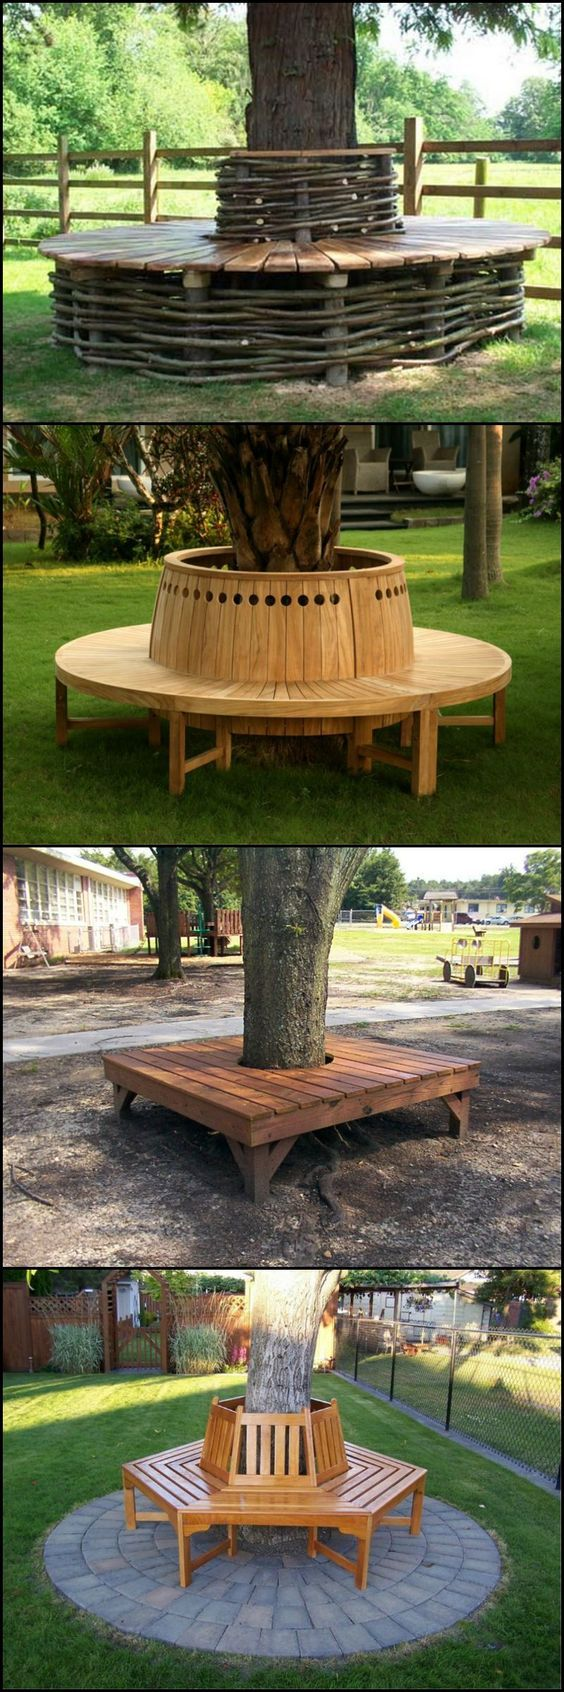 Wrap around tree seated bench design ideas.